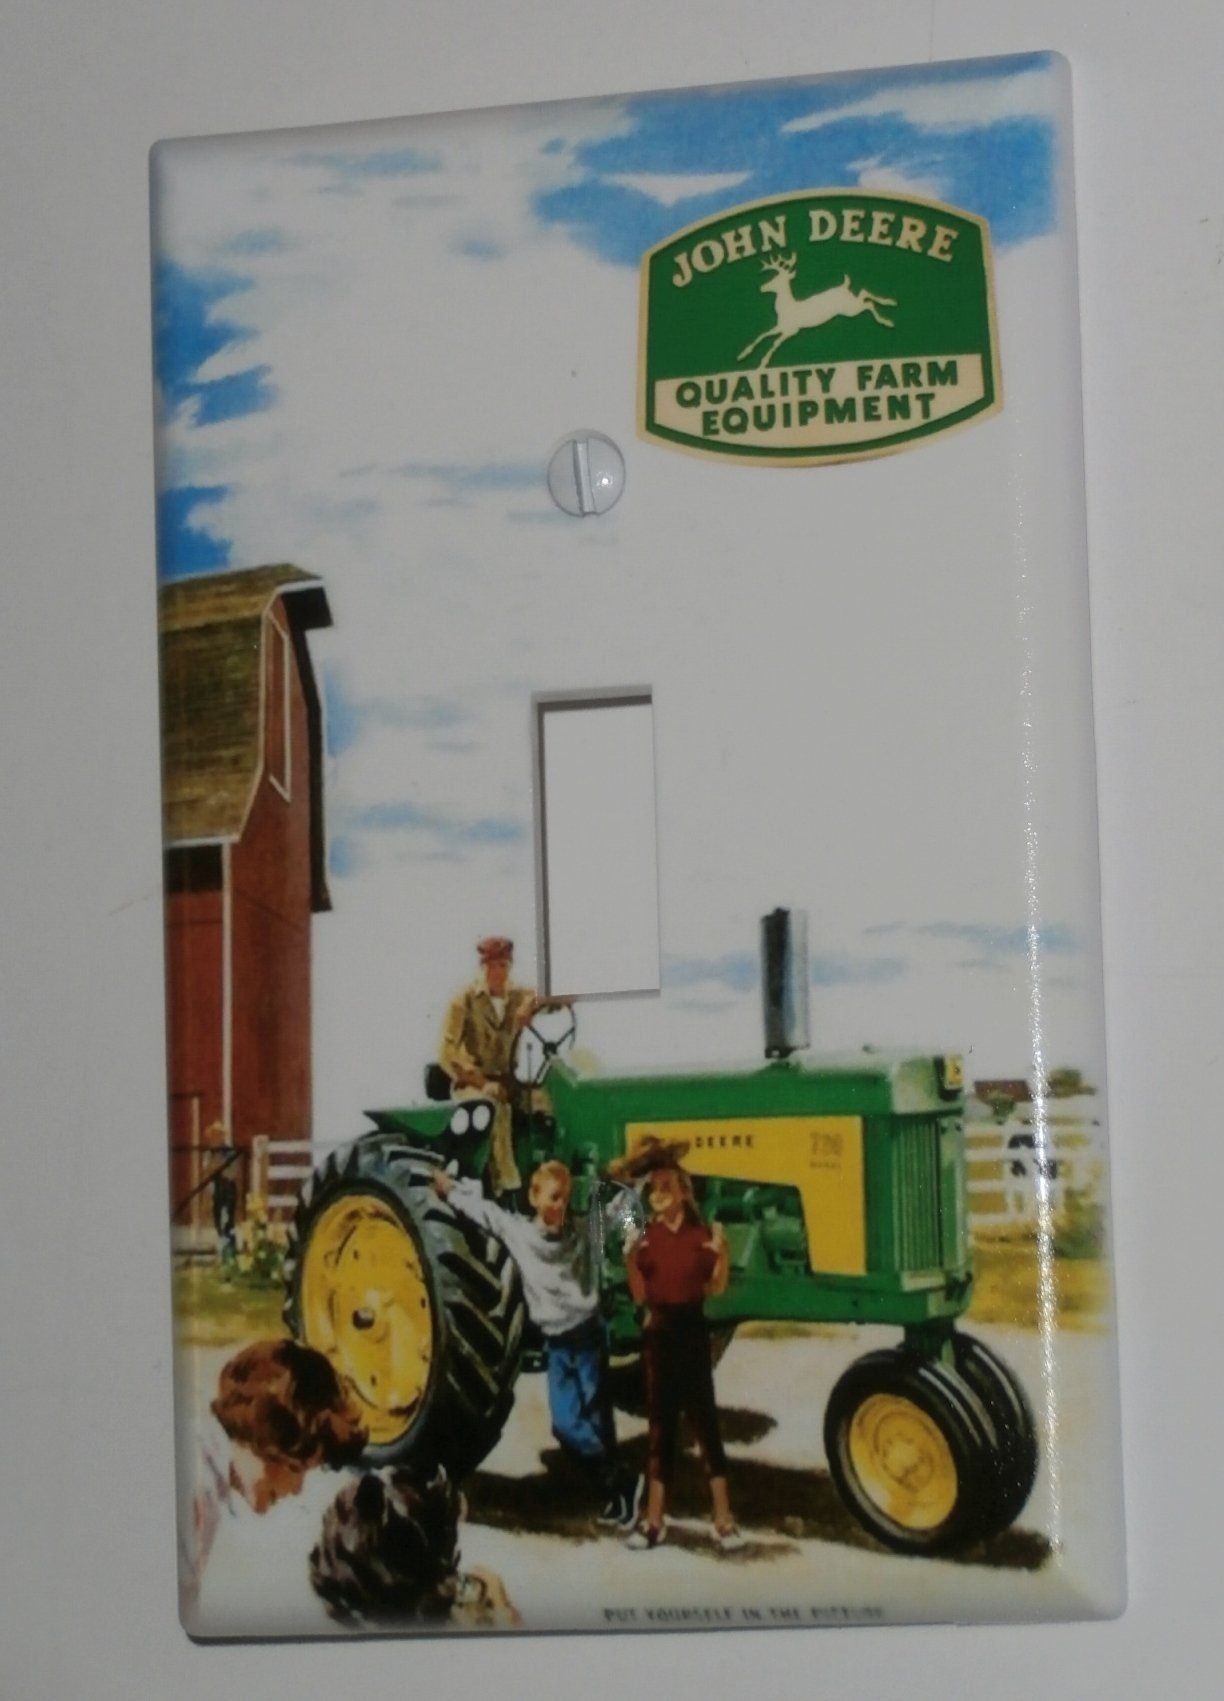 JOHN DEERE Tractor Single Toggle Light Switch Plate Cover